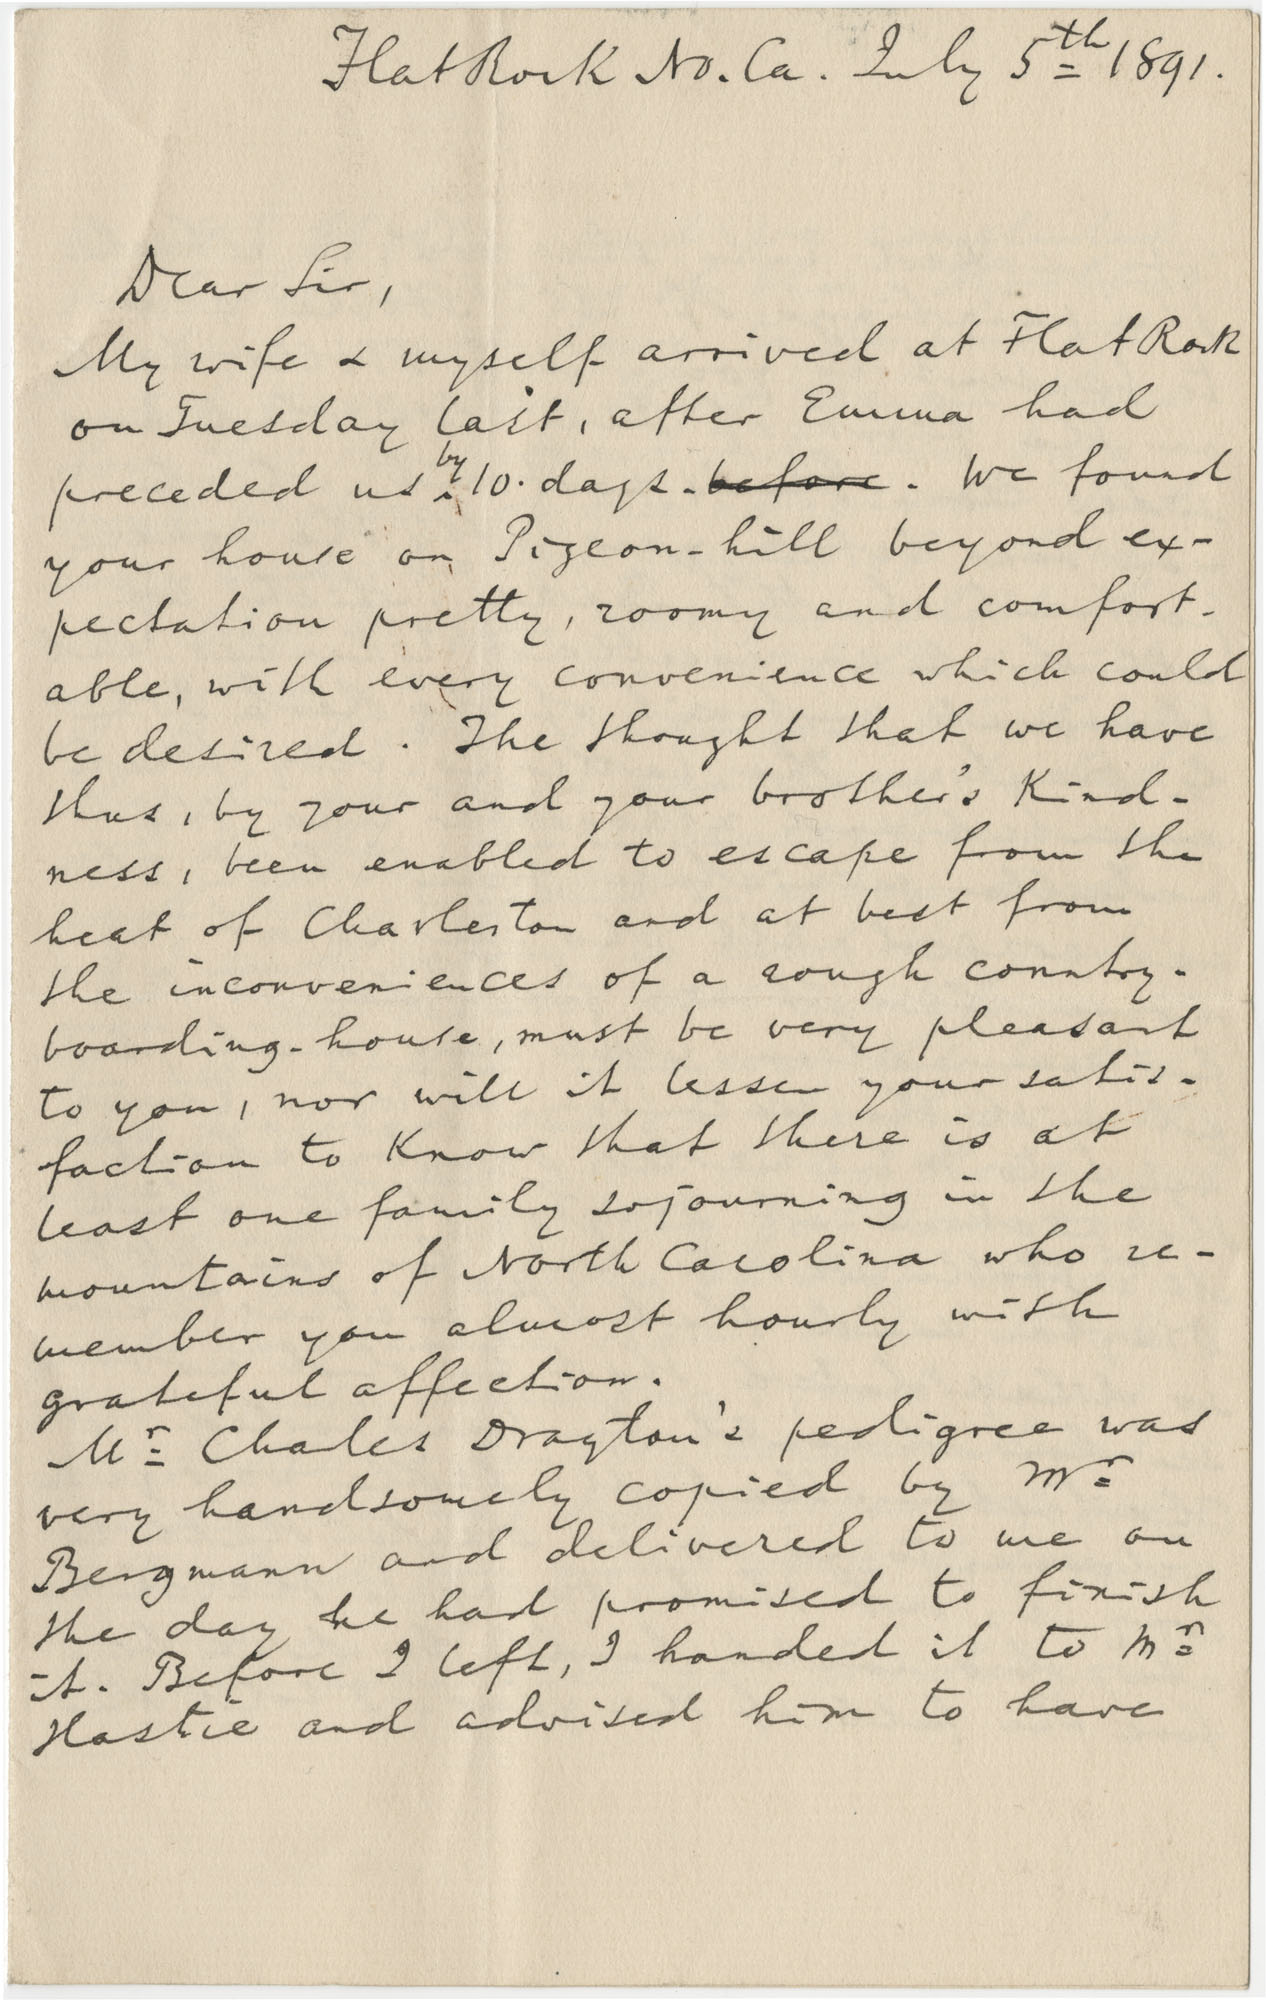 Letter from A. Sachtleben to J. Drayton Grimke-Drayton Esq., July 5, 1891